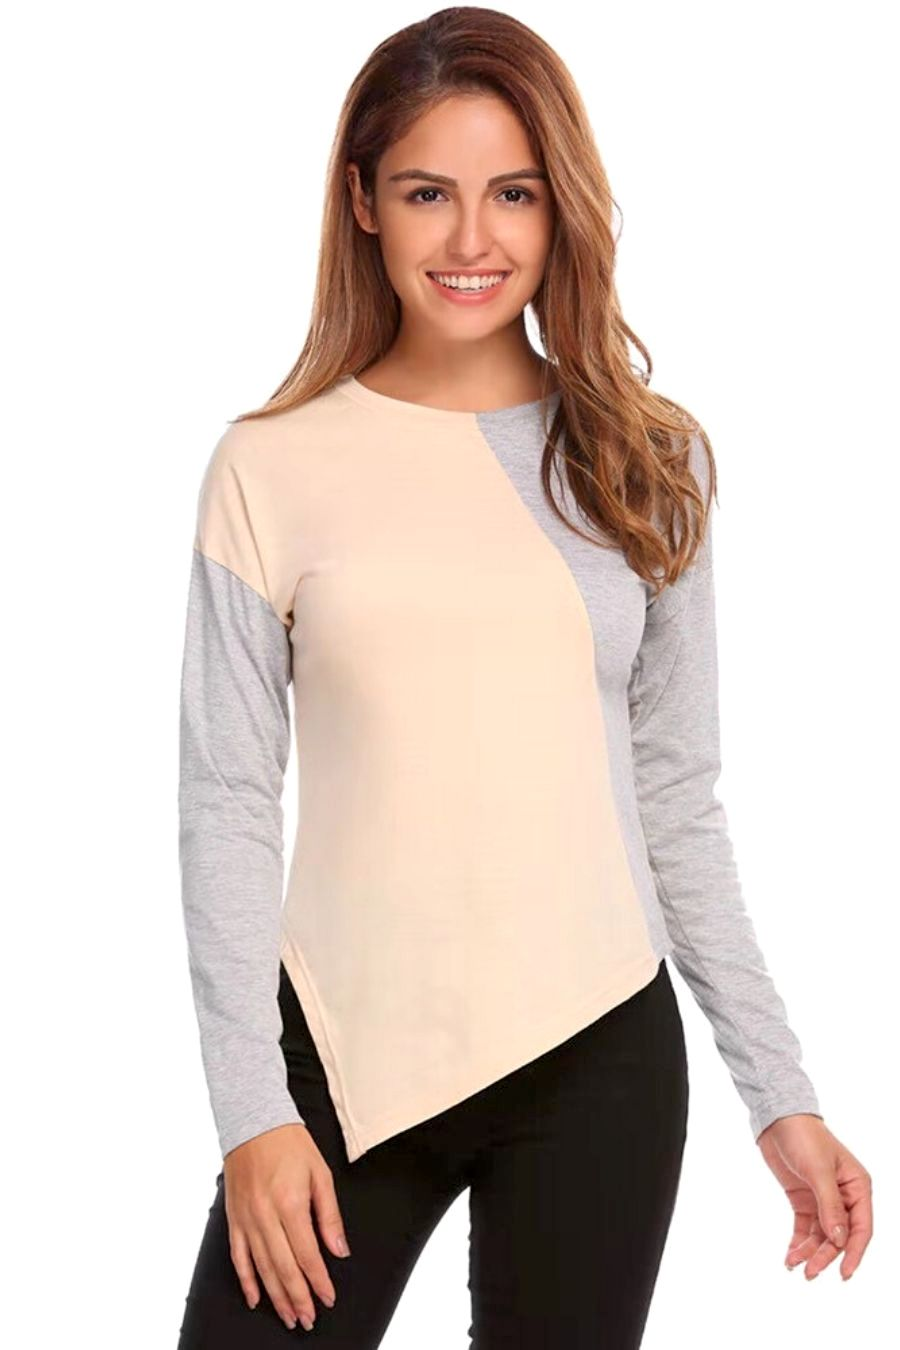 Casual Lounge Long Sleeves T-shirt Sweatshirt